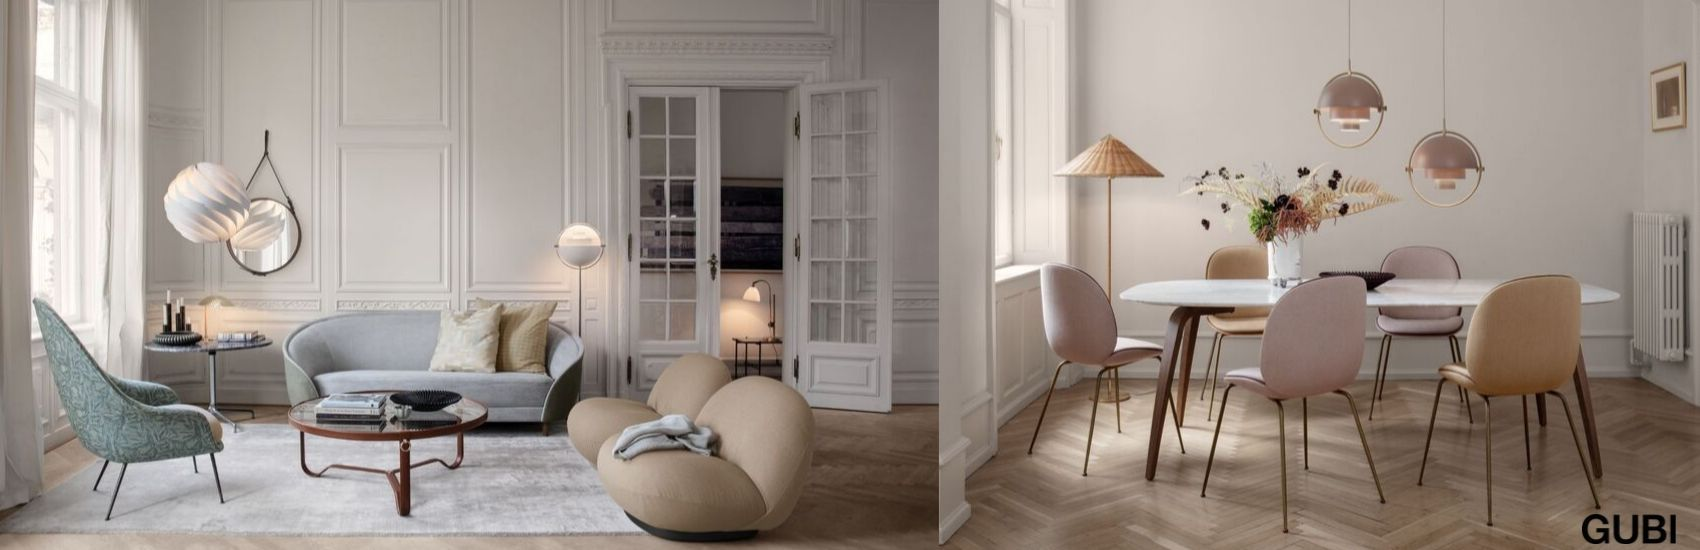 Palette Parlor Timeless Modern Furniture Scandinavian Design